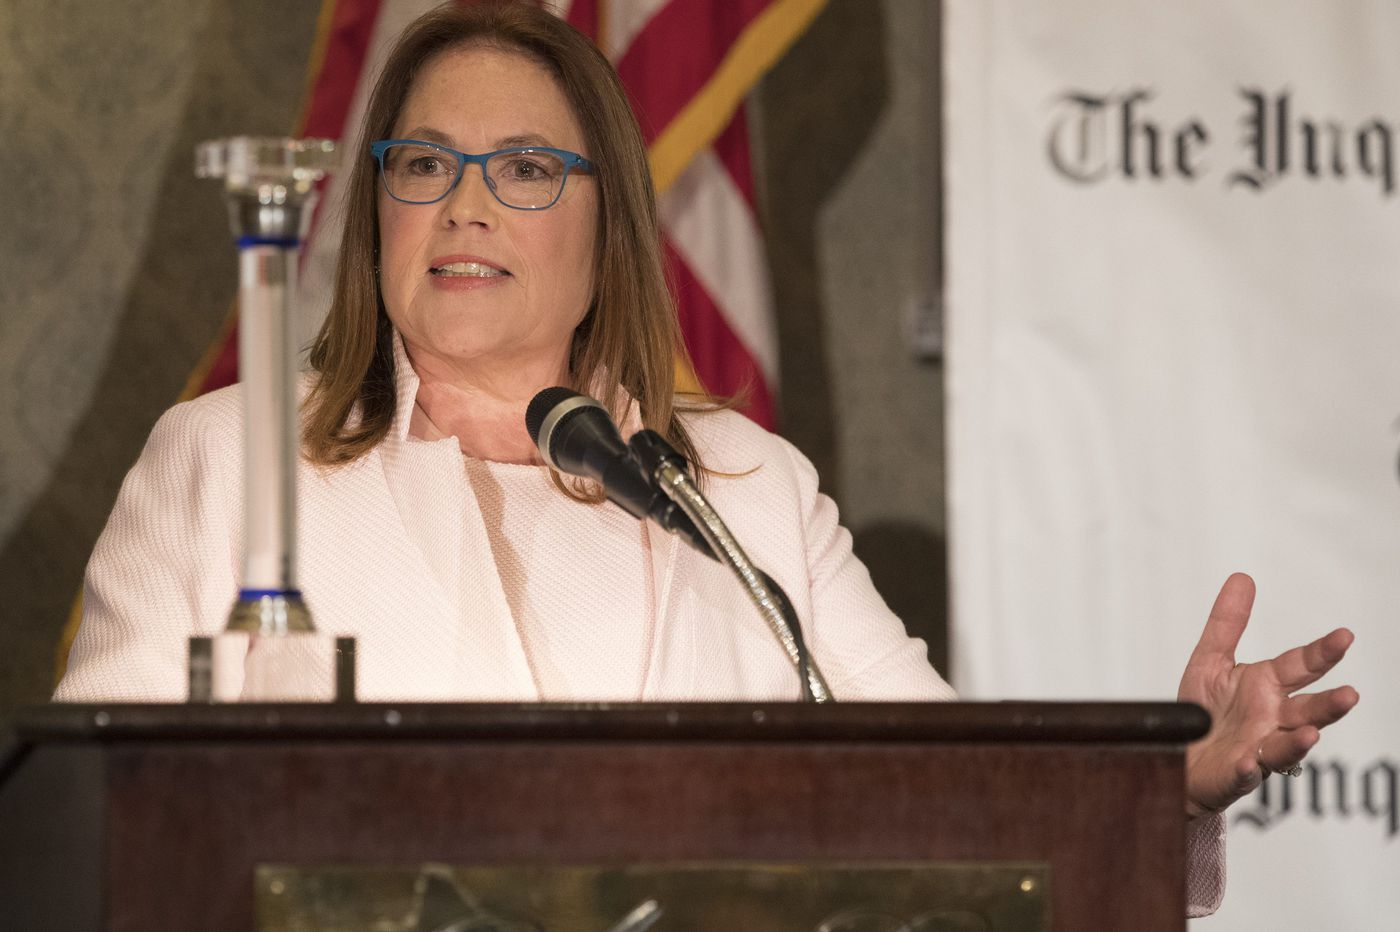 Philly legal colossus Morgan Lewis elects McKeon to lead firm for 2nd term